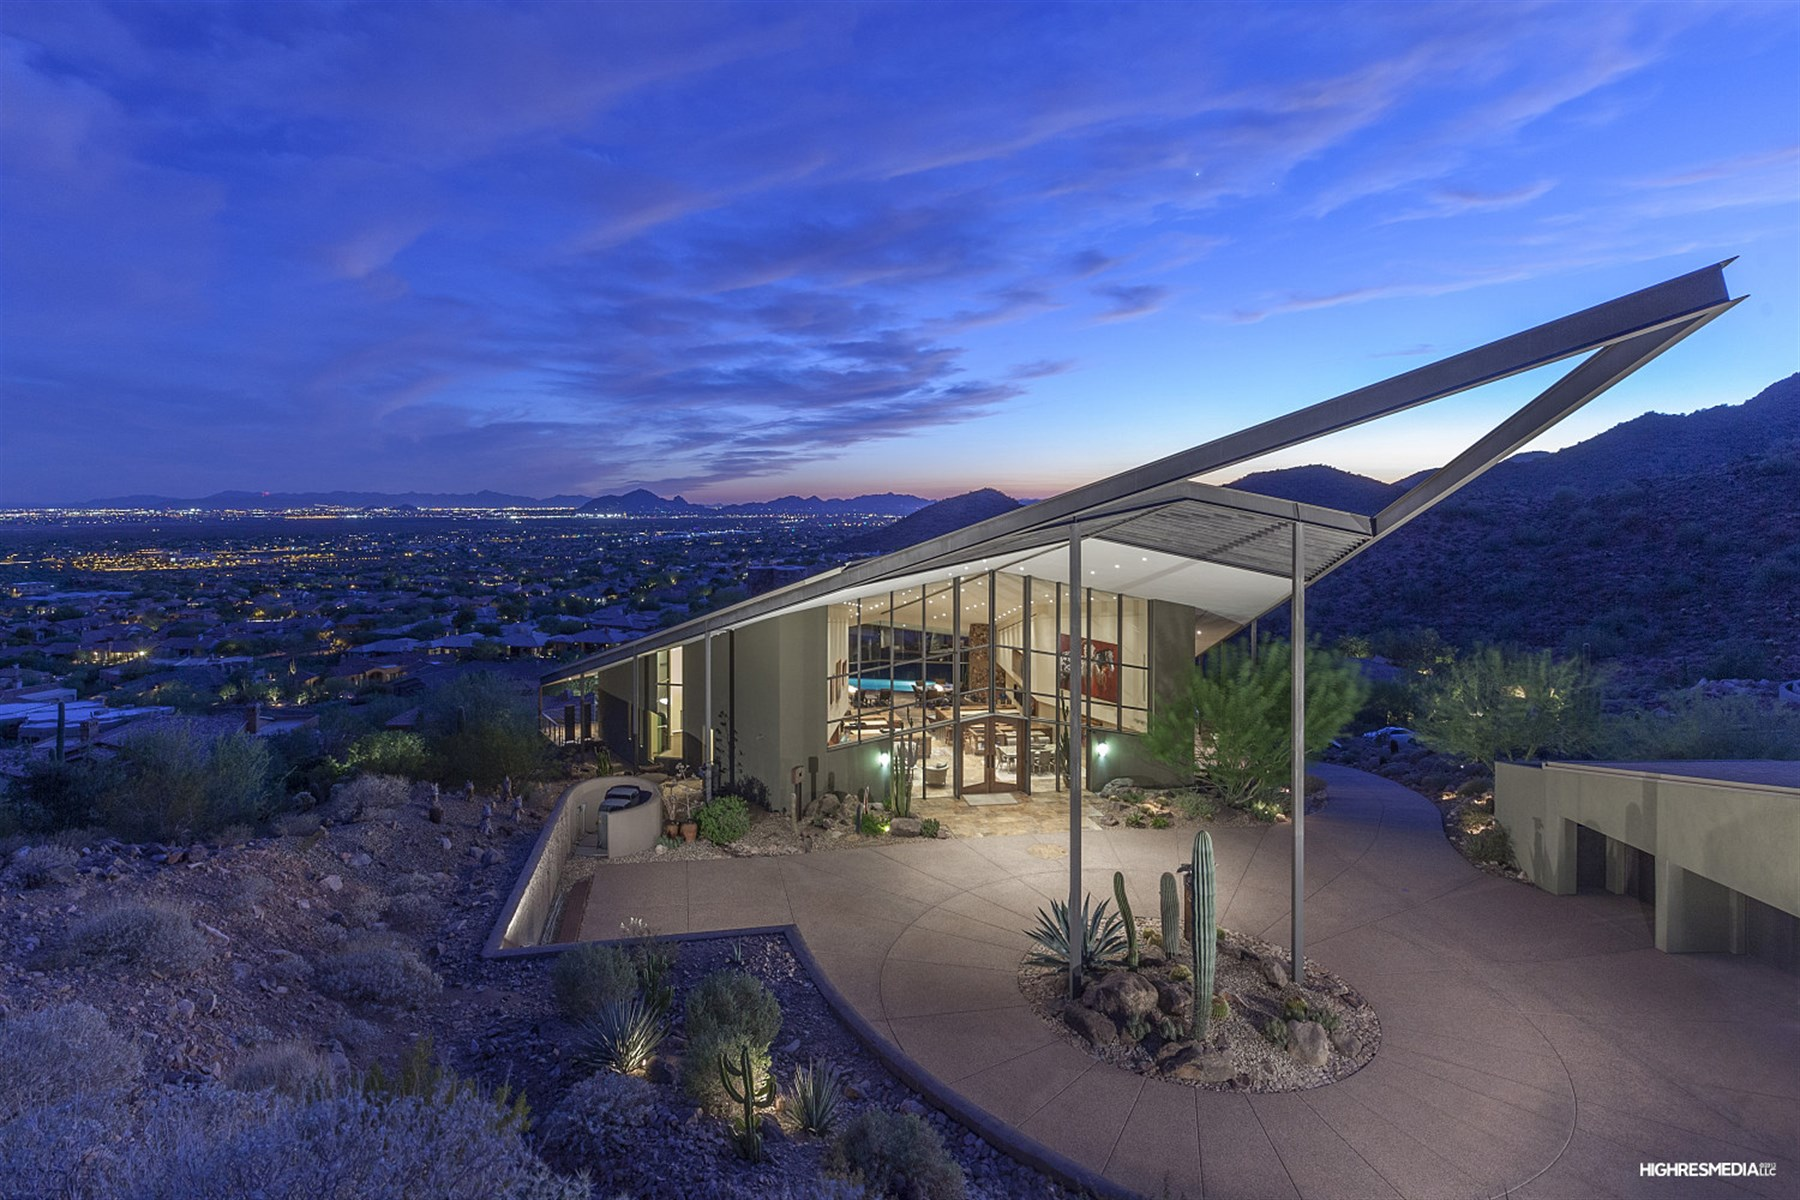 独户住宅 为 销售 在 Architectural Masterpiece in Scottsdale Mountain 12493 N 138th PL Scottsdale, 亚利桑那州 85259 美国